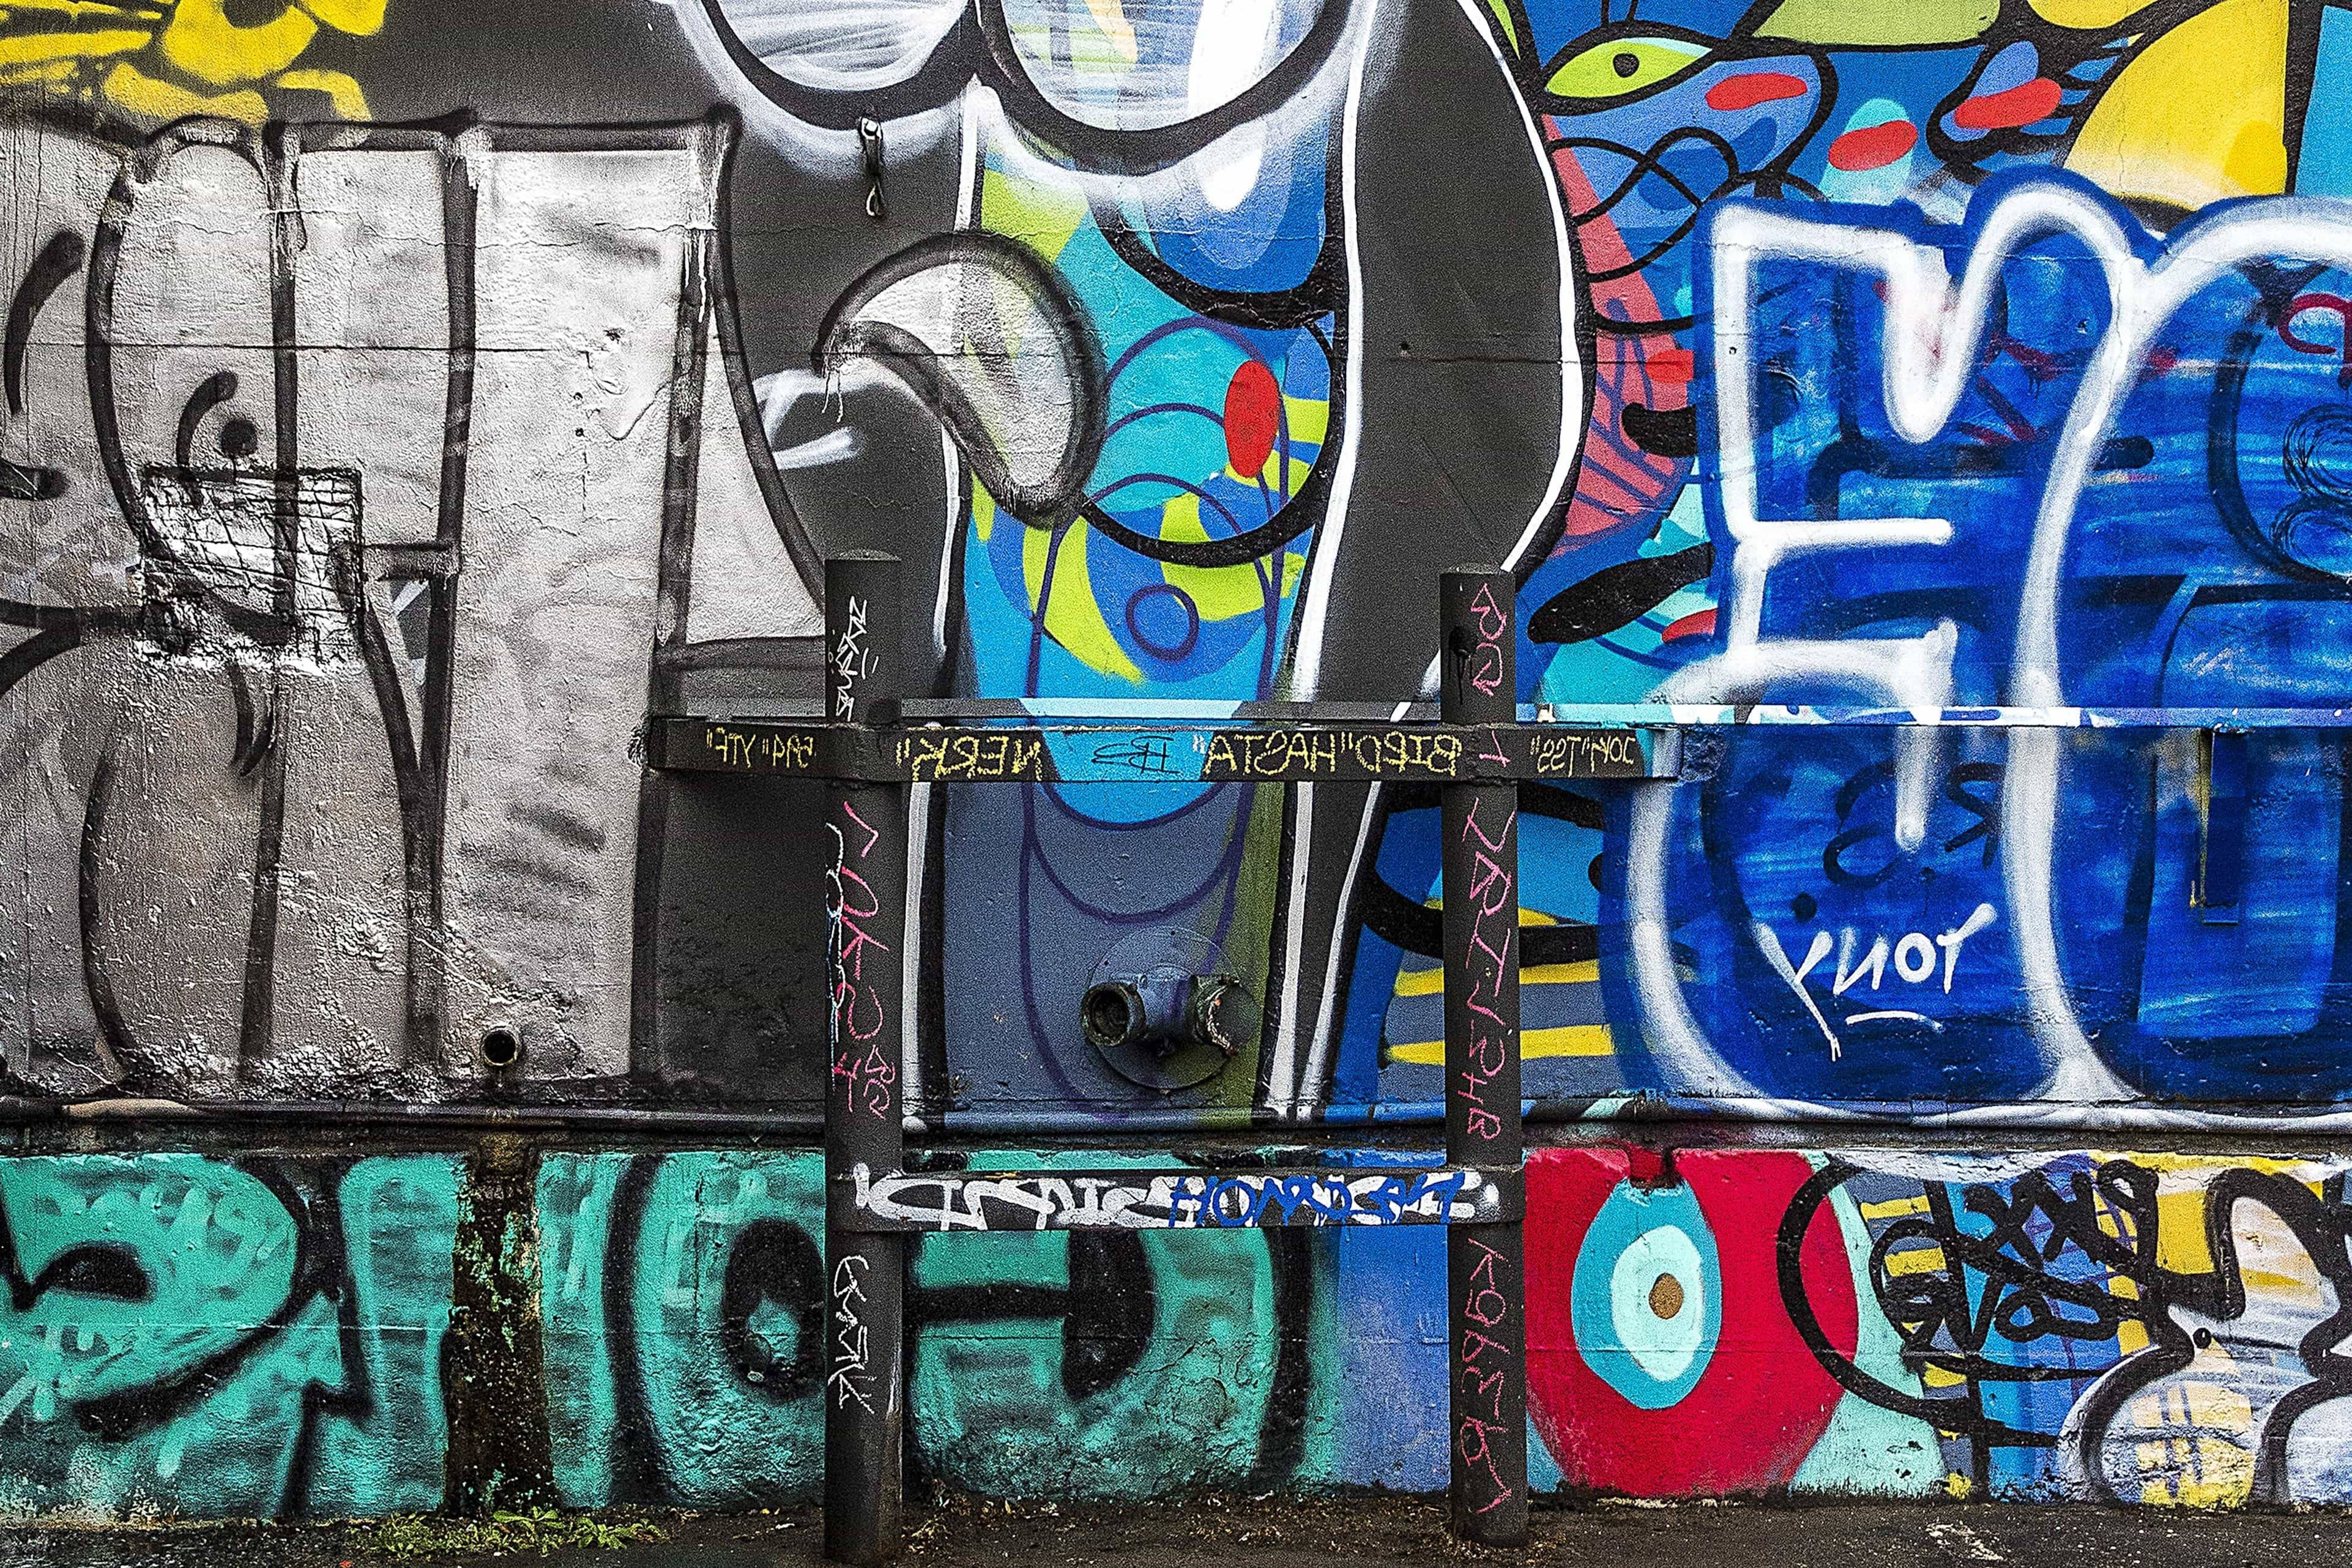 Free Picture: Graffiti, Urban, Vandalism, Airbrush, Wall, Mural Throughout Most Current Airbrush Wall Art (View 8 of 20)